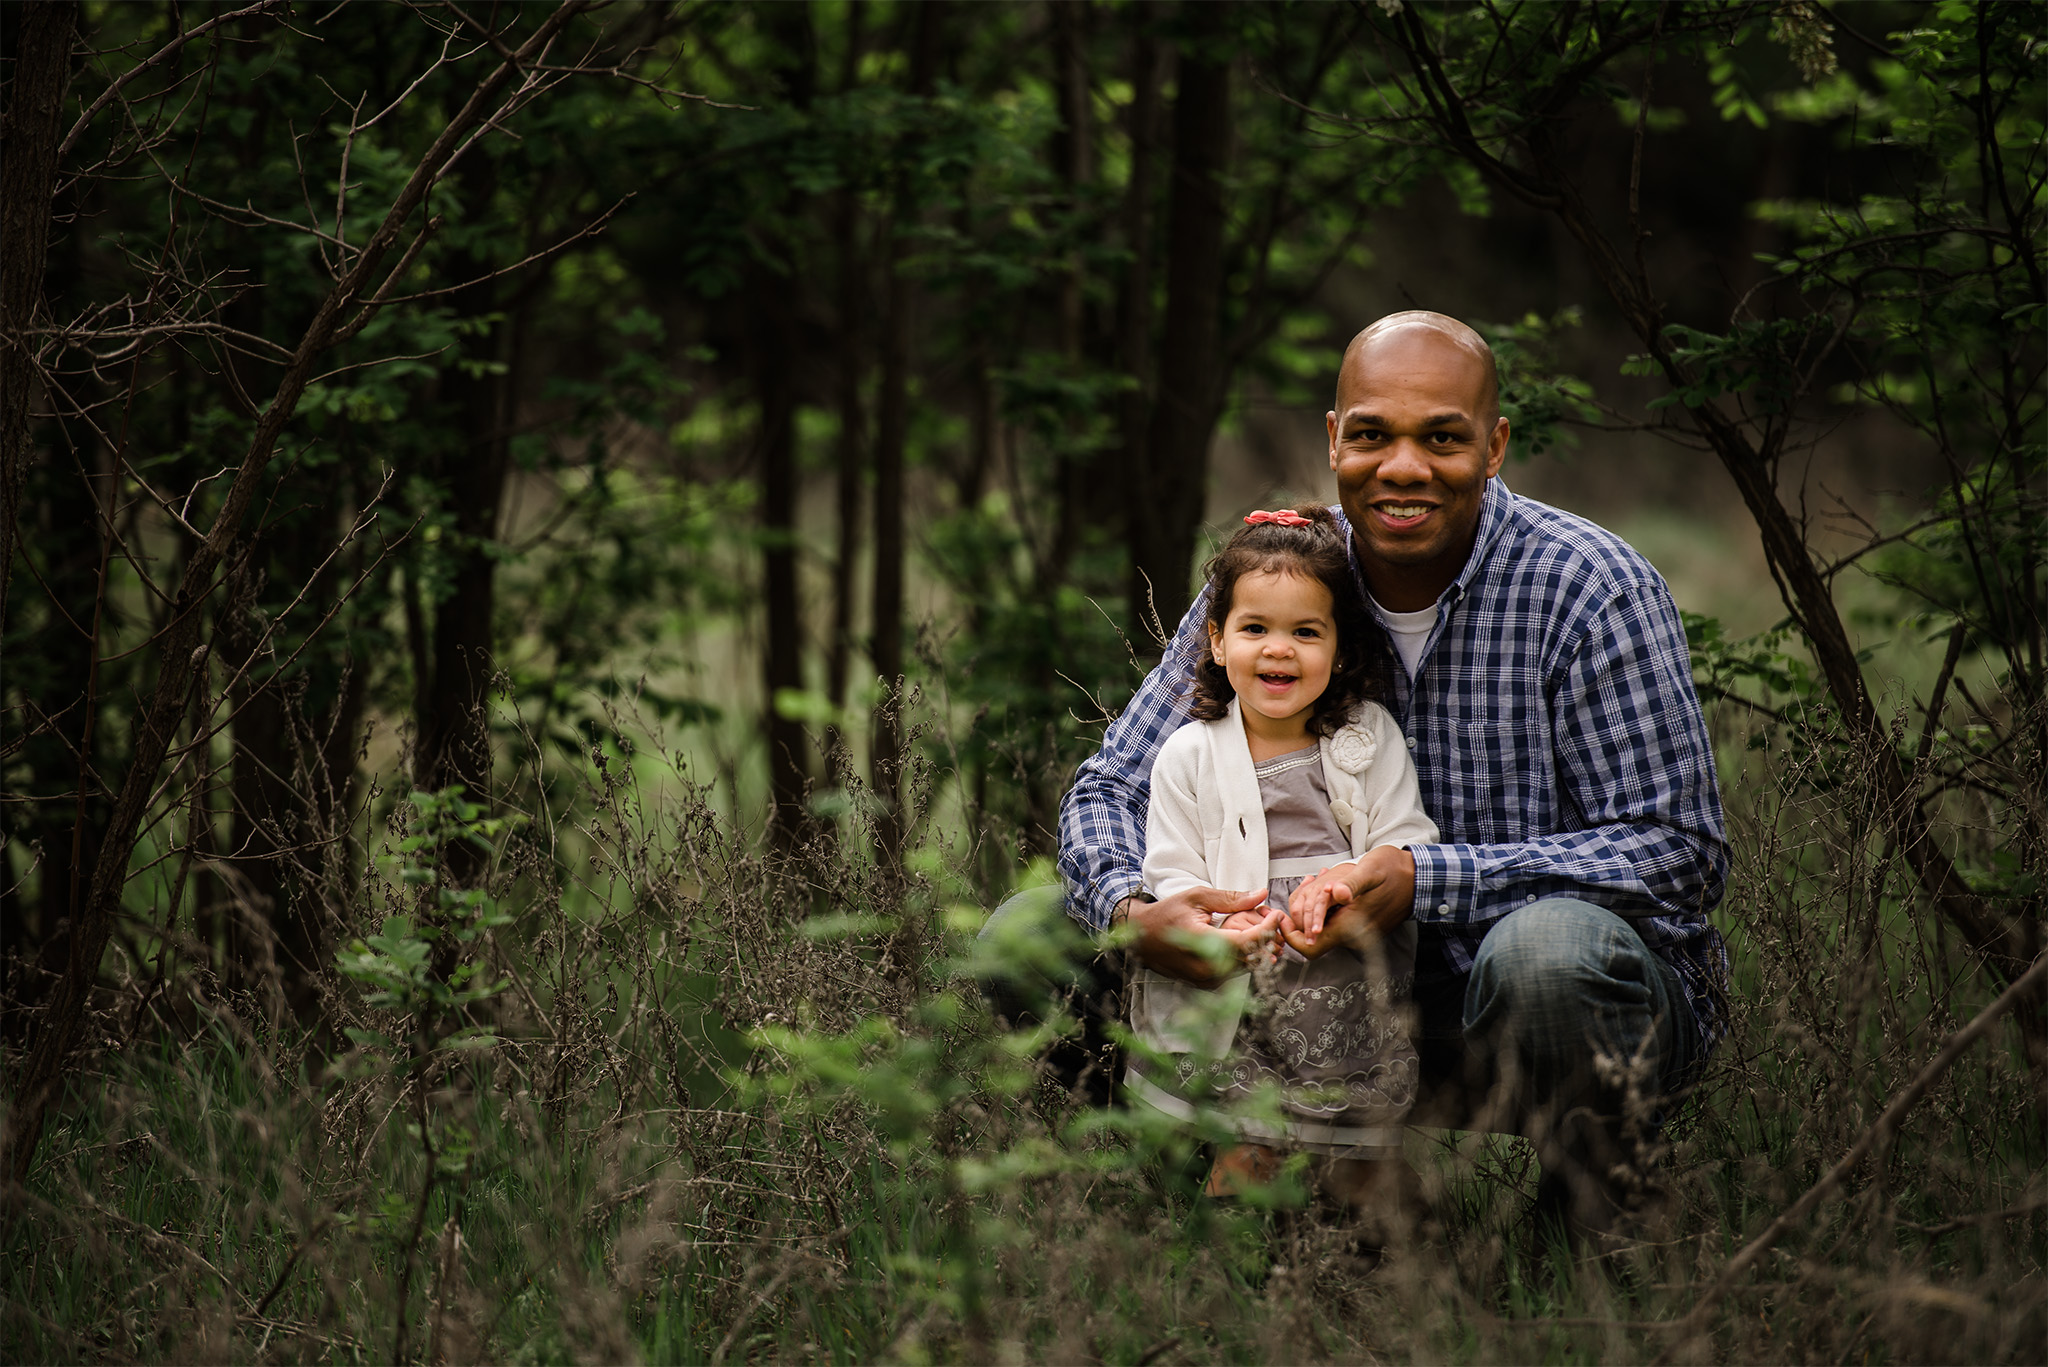 dad posing with daughter